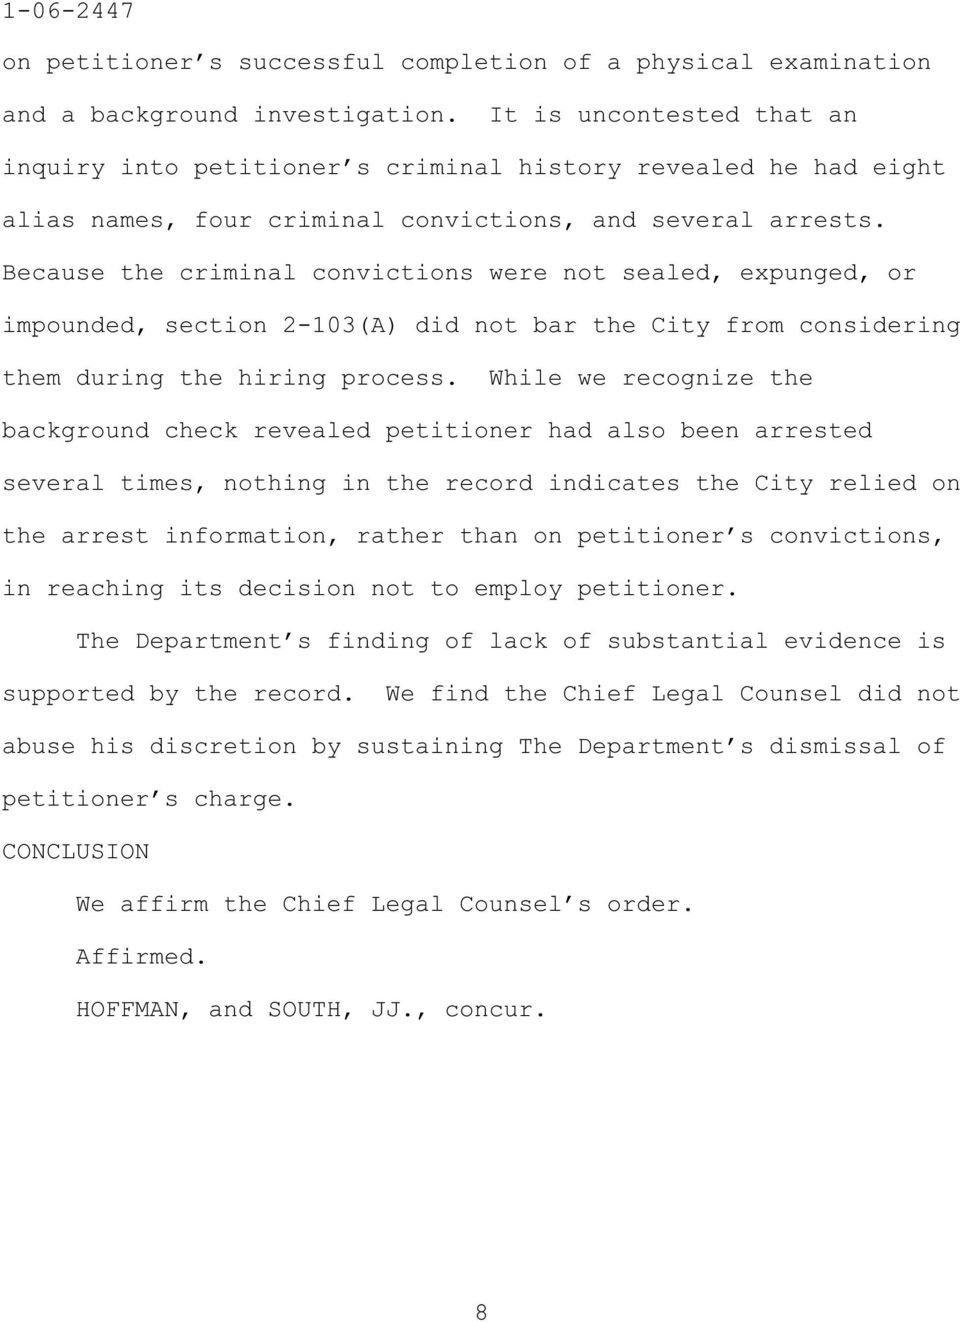 Because the criminal convictions were not sealed, expunged, or impounded, section 2-103(A) did not bar the City from considering them during the hiring process.